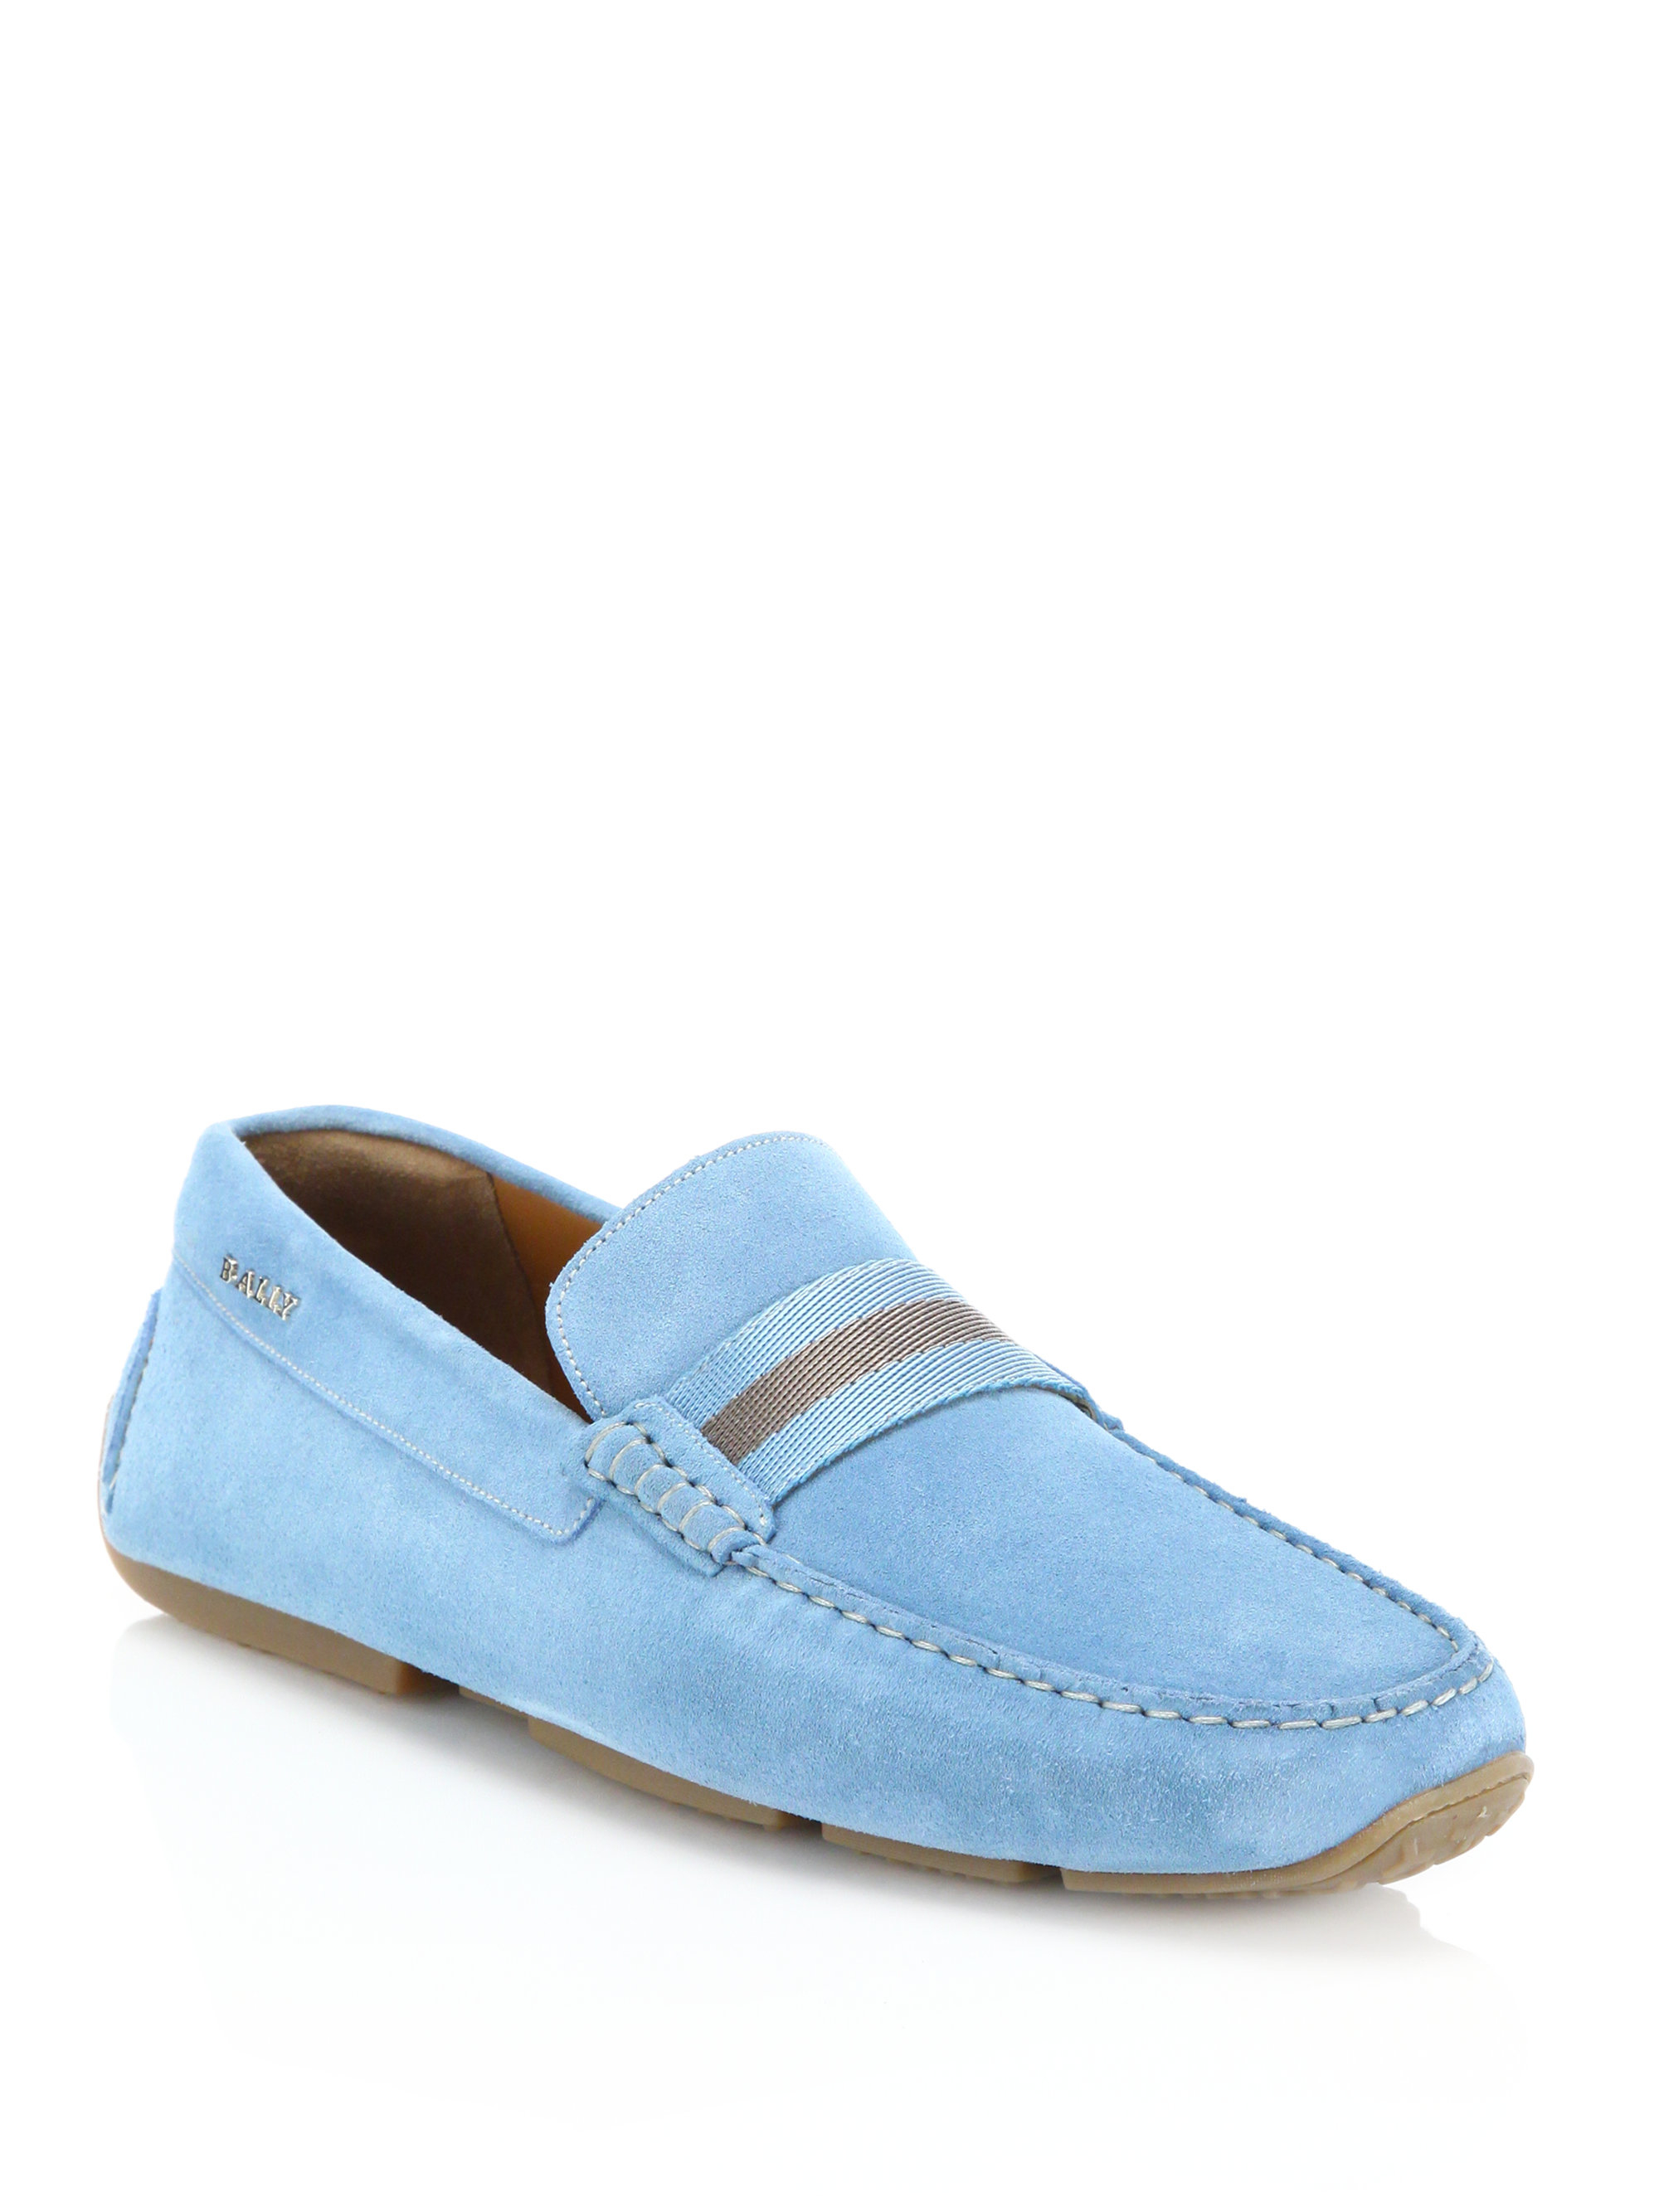 Lyst Bally Pearce Suede Drivers In Blue For Men